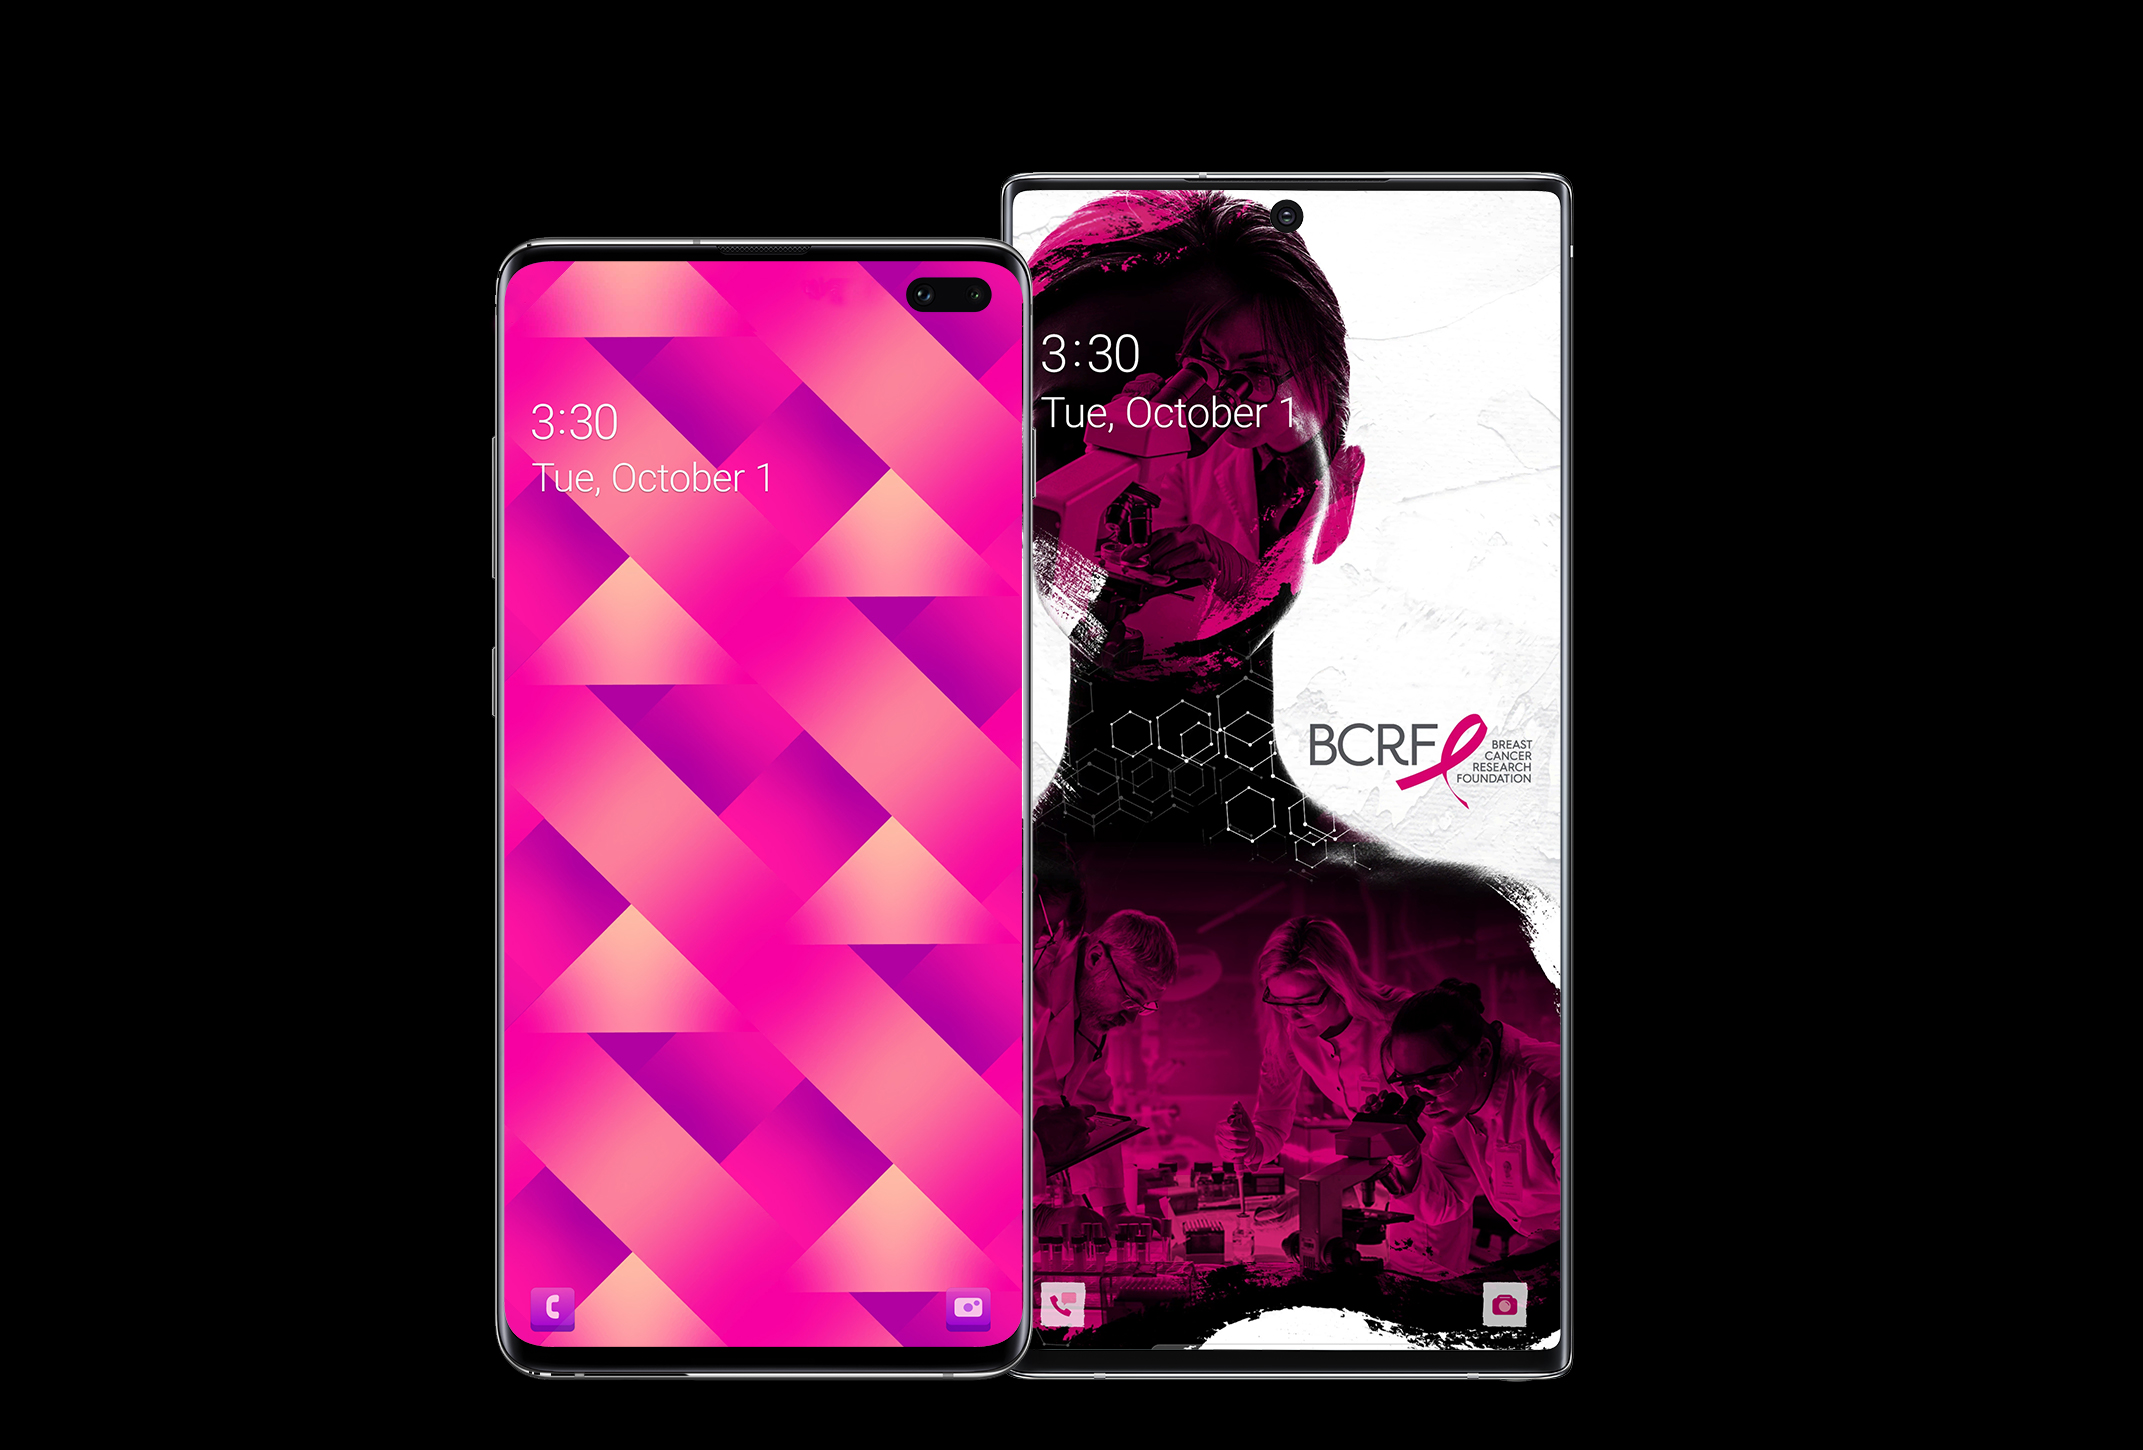 Breast Cancer Research Foundation (BCRF) smartphone theme 2